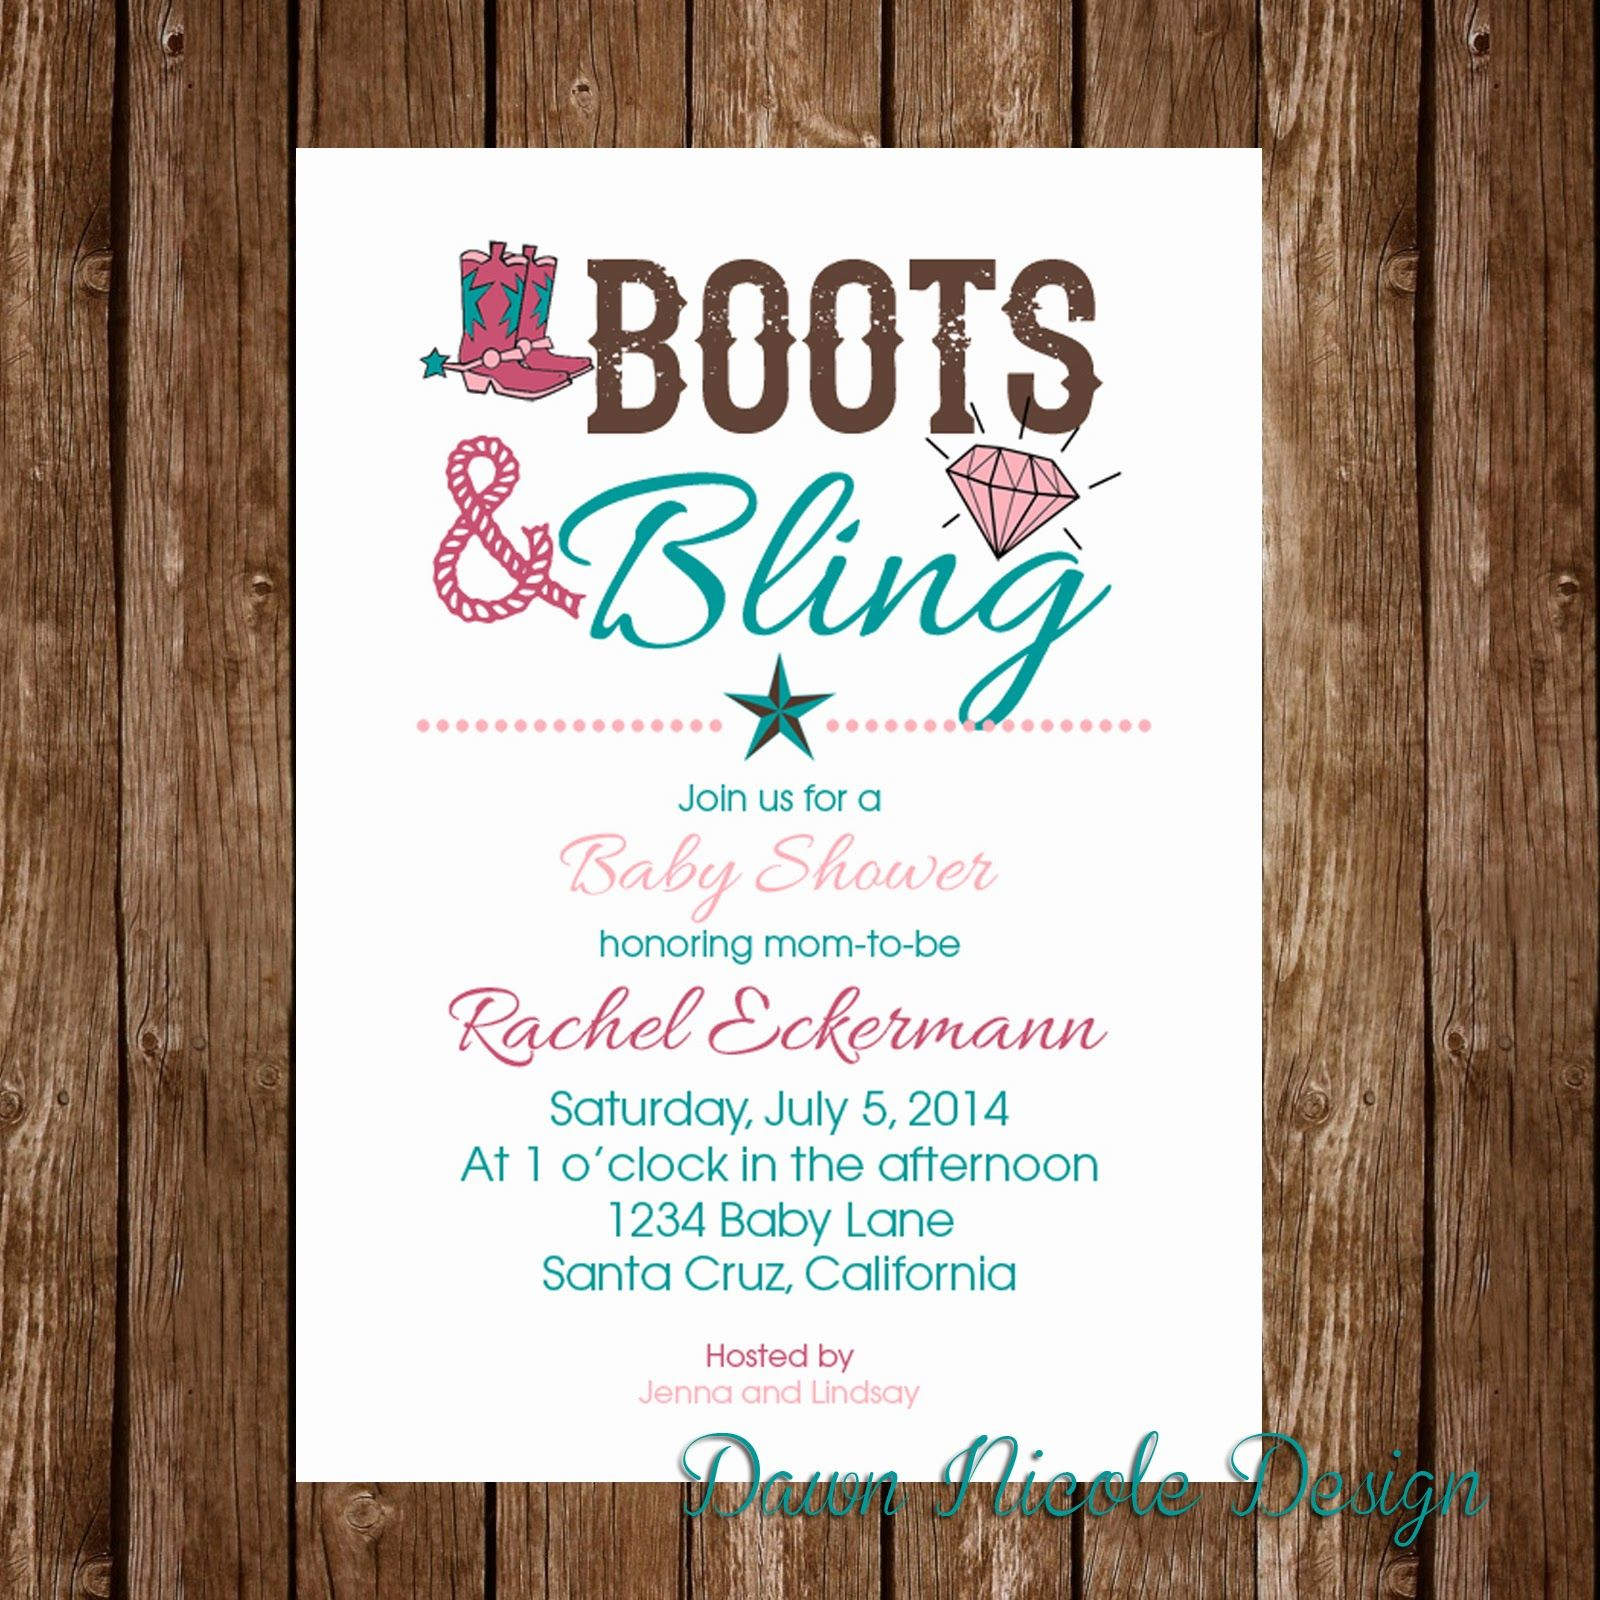 boots and bling party, boots and bling baby shower, boots and bling ...